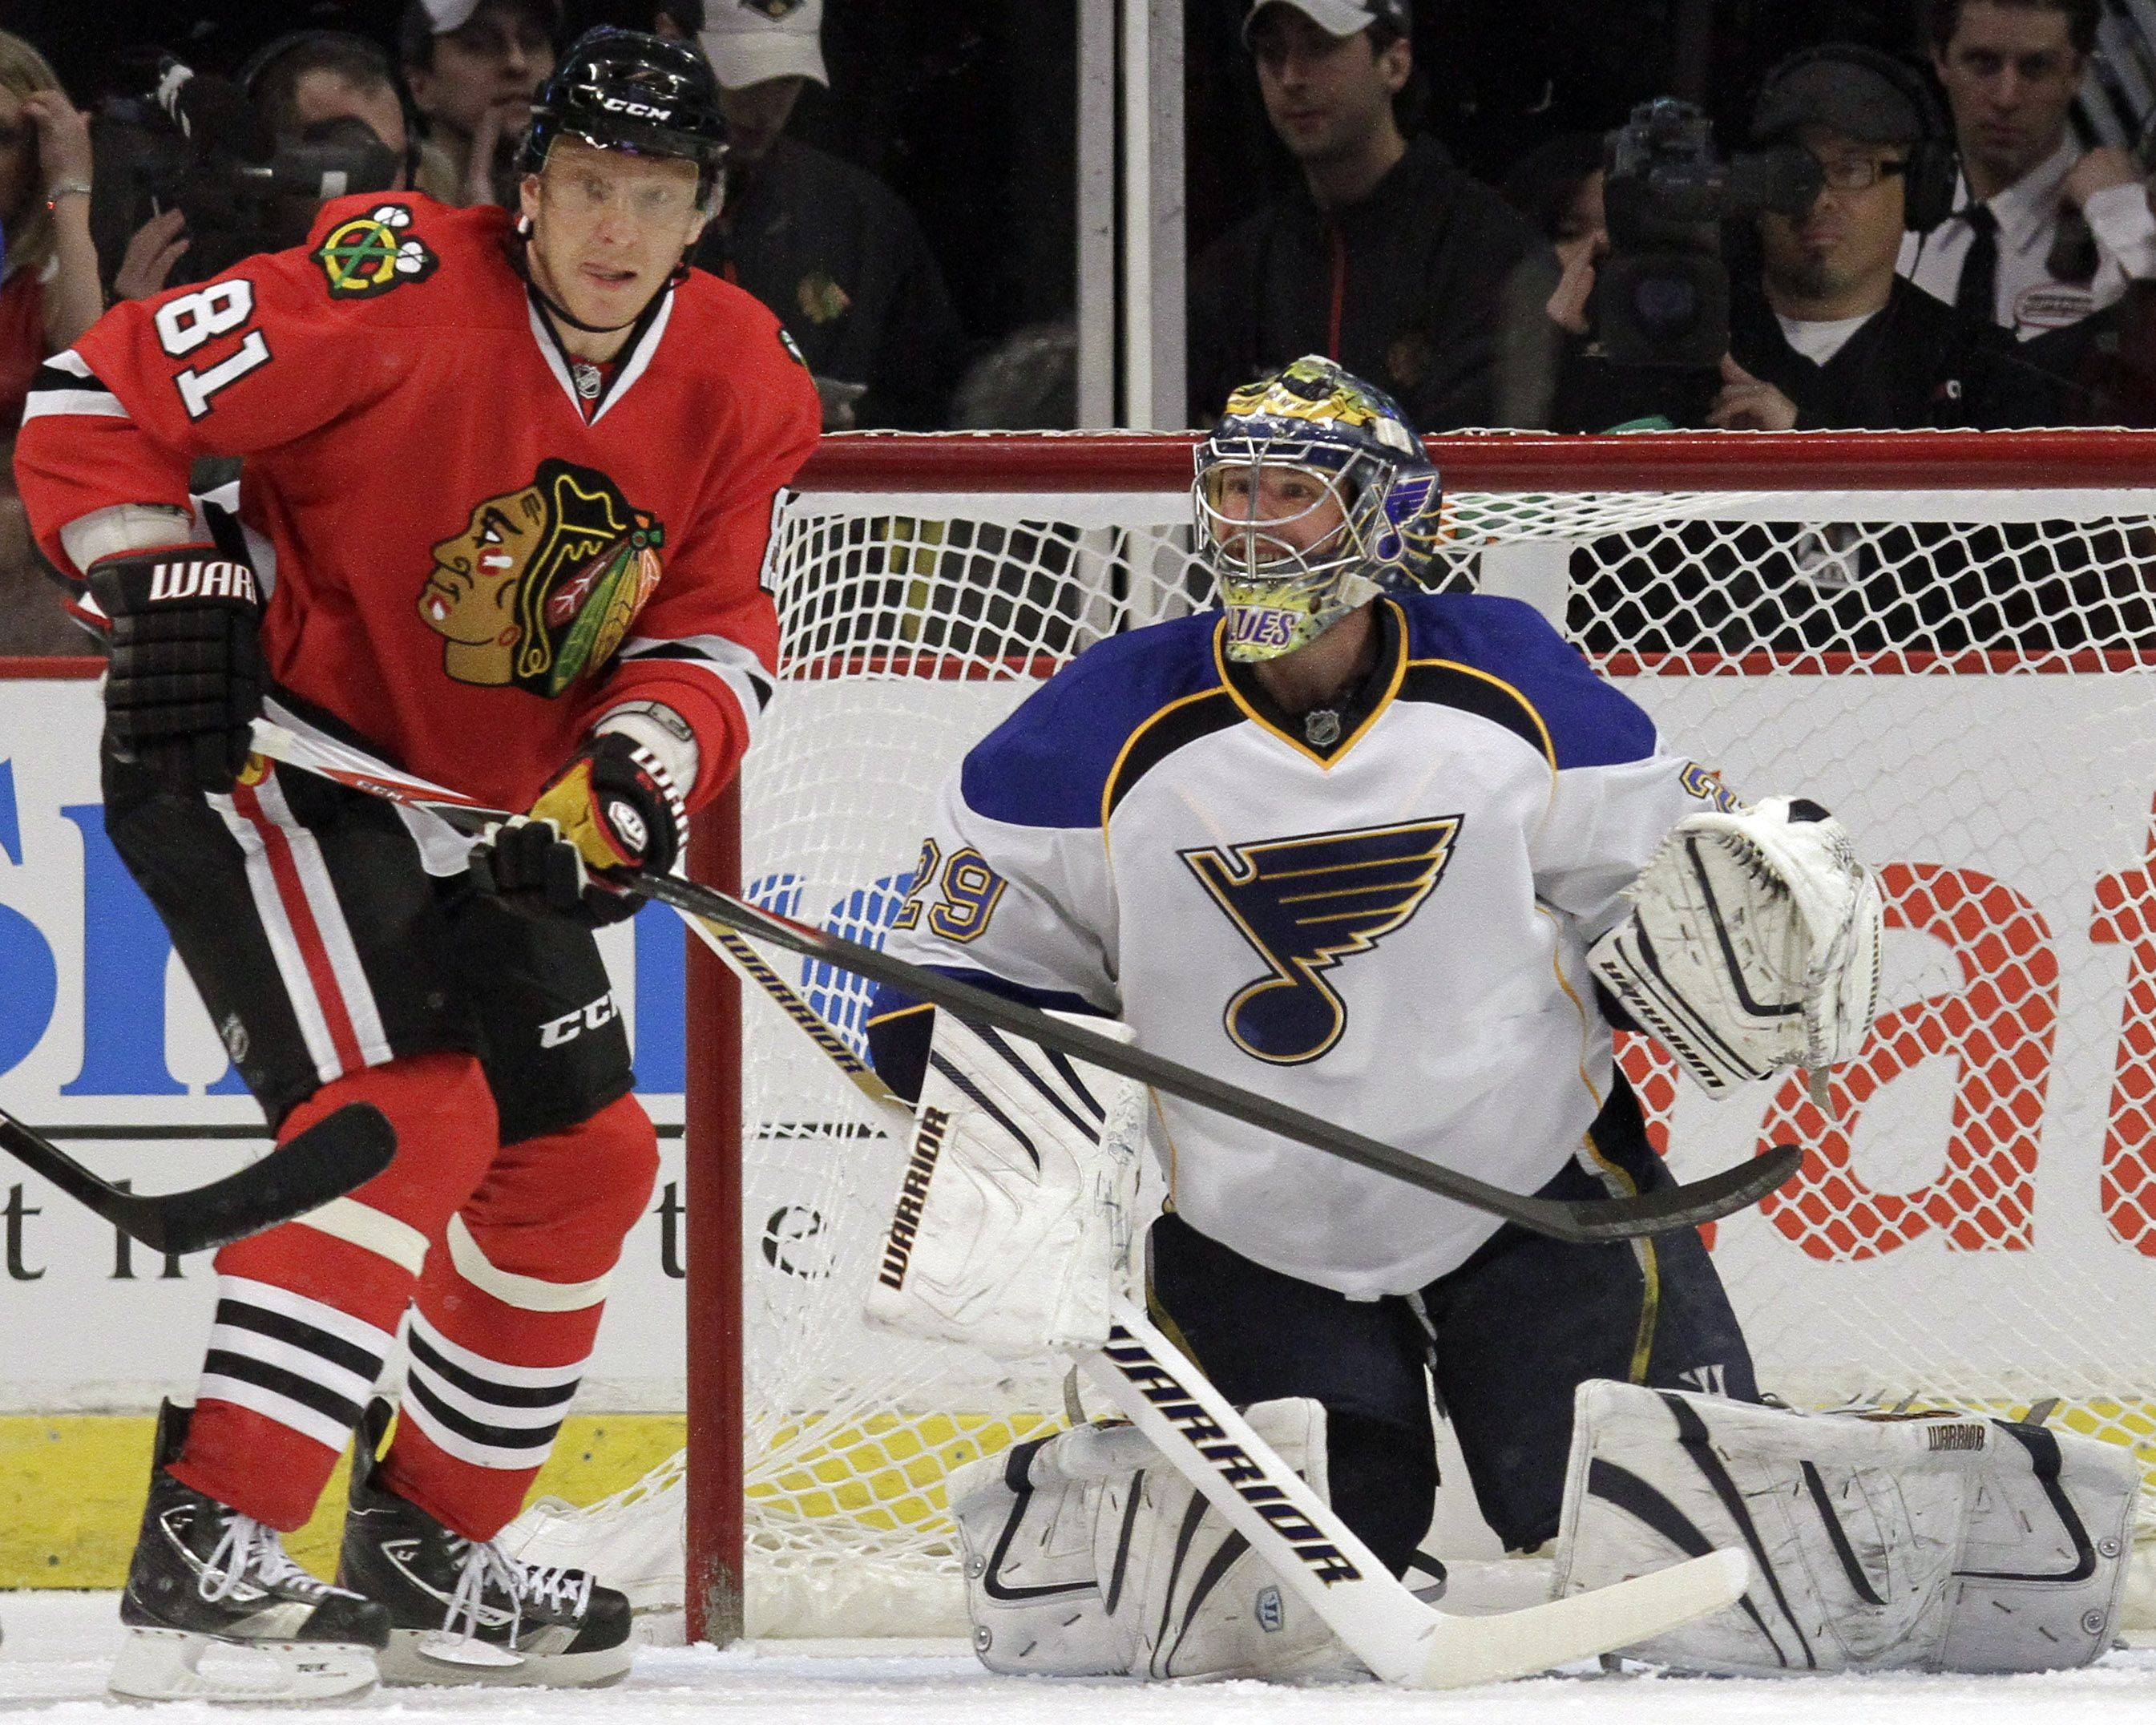 St. Louis Blues goalie Ty Conklin, right, and Chicago Blackhawks' Marian Hossa watch the puck during the first period of an NHL hockey game in Chicago, Wednesday, April 6, 2011.